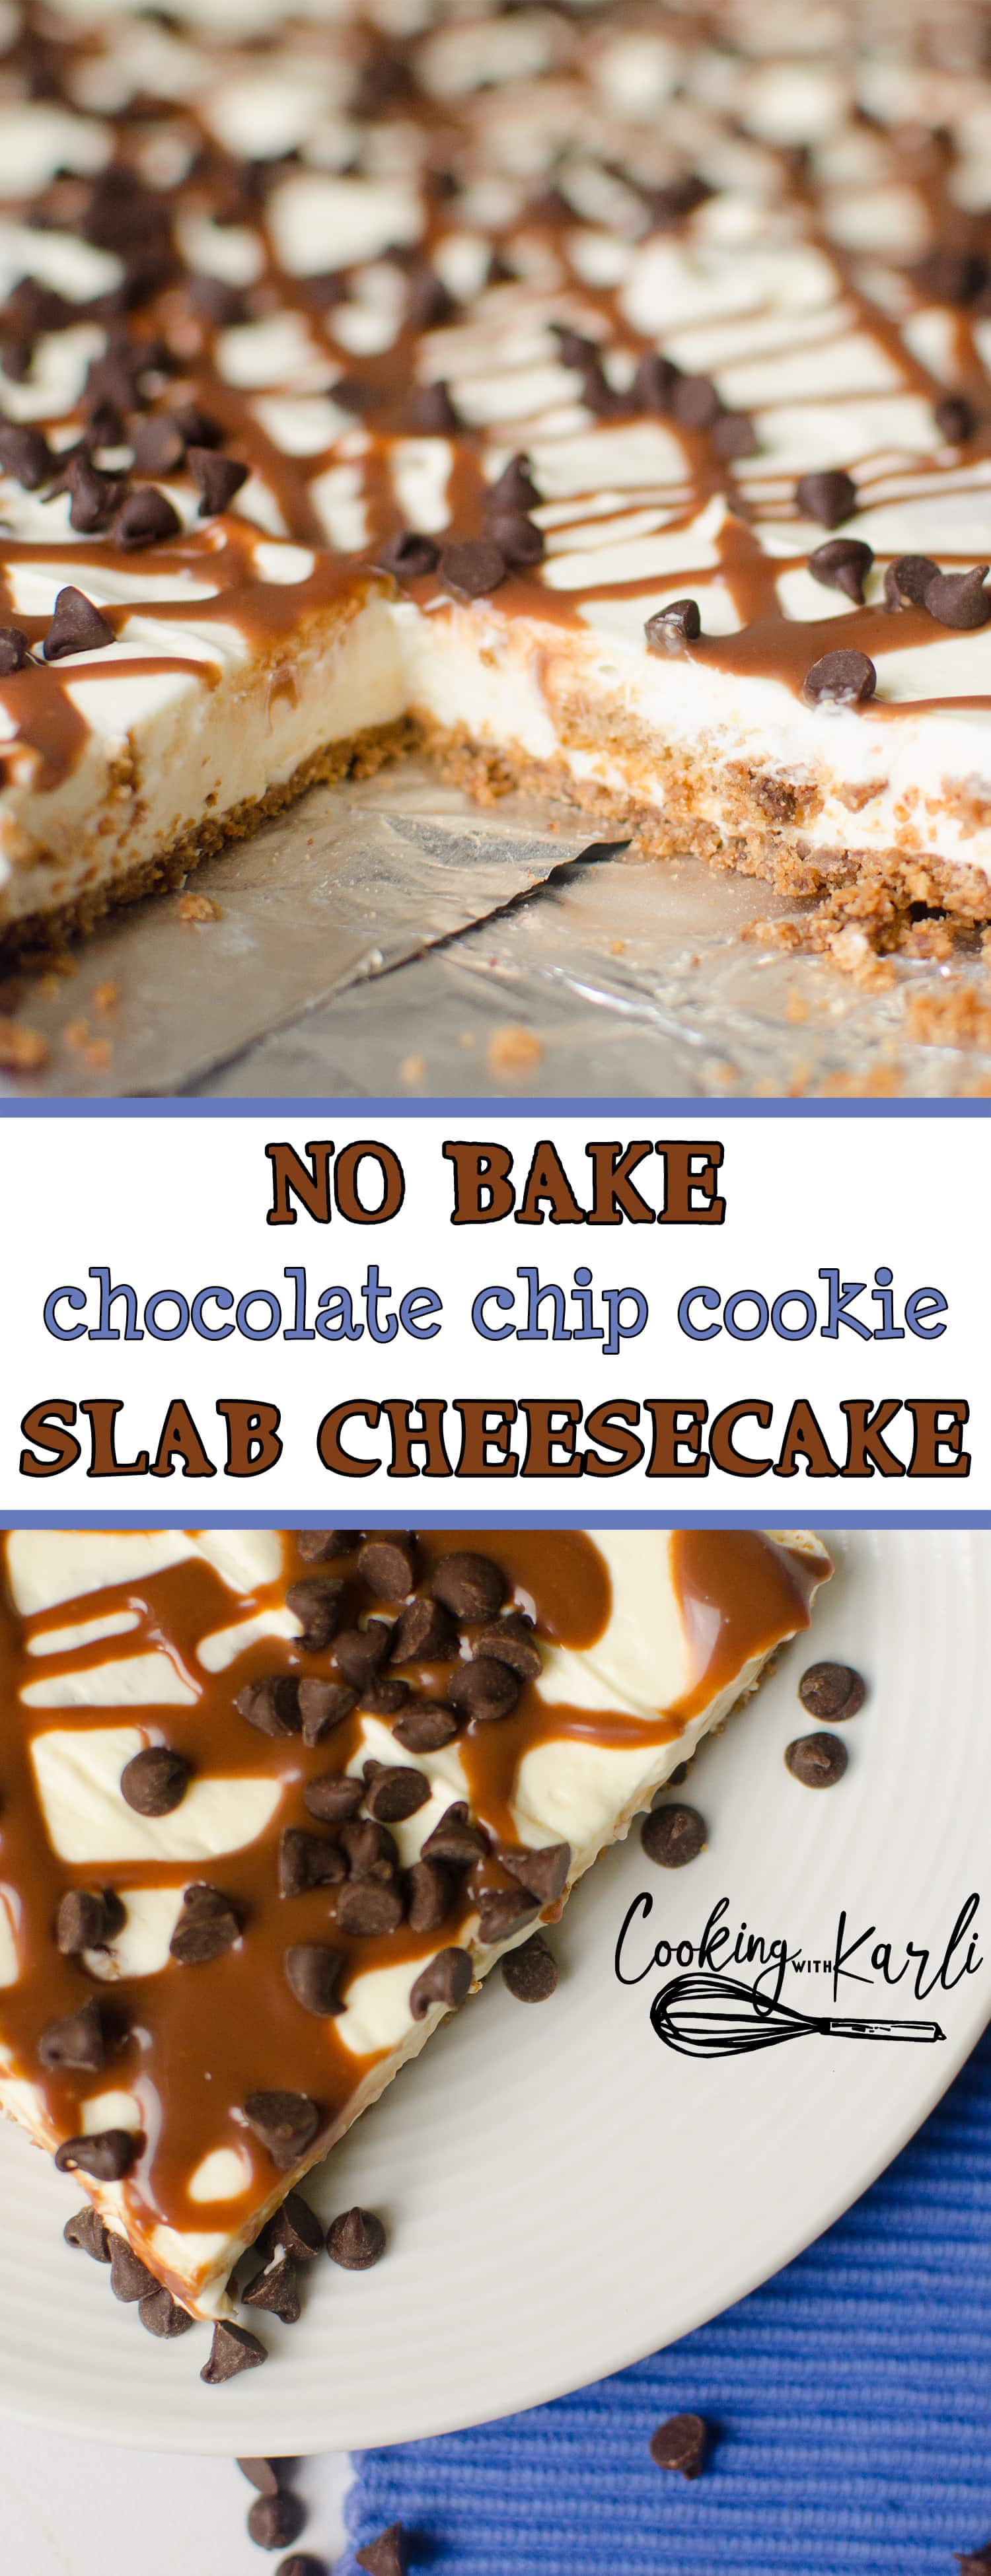 No Bake Chocolate Chip Cookie Slab Cheesecake is a sweet and creamy no bake cheesecake loaded with chocolate chip cookie pieces on top of a simple cookie crust to make this a crowd pleasing dessert. - Cooking with Karli - #recipe #nobake #cheesecake #dessert #crowdpleaser